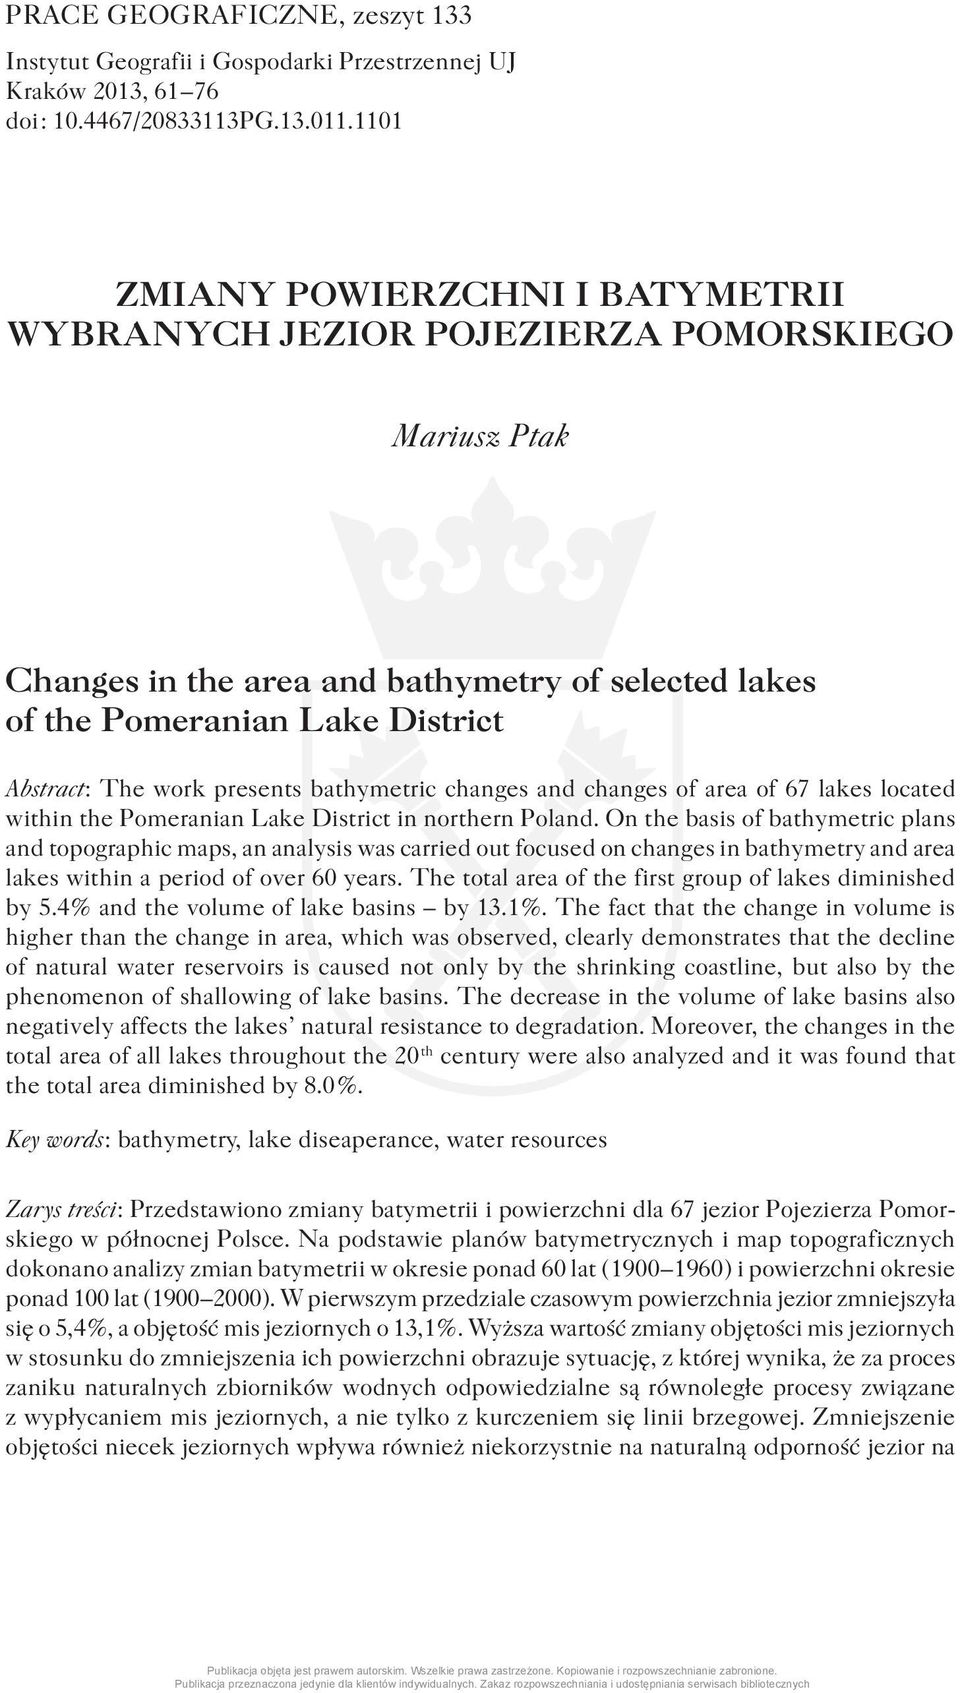 presents bathymetric changes and changes of area of 67 lakes located within the Pomeranian Lake District in northern Poland.